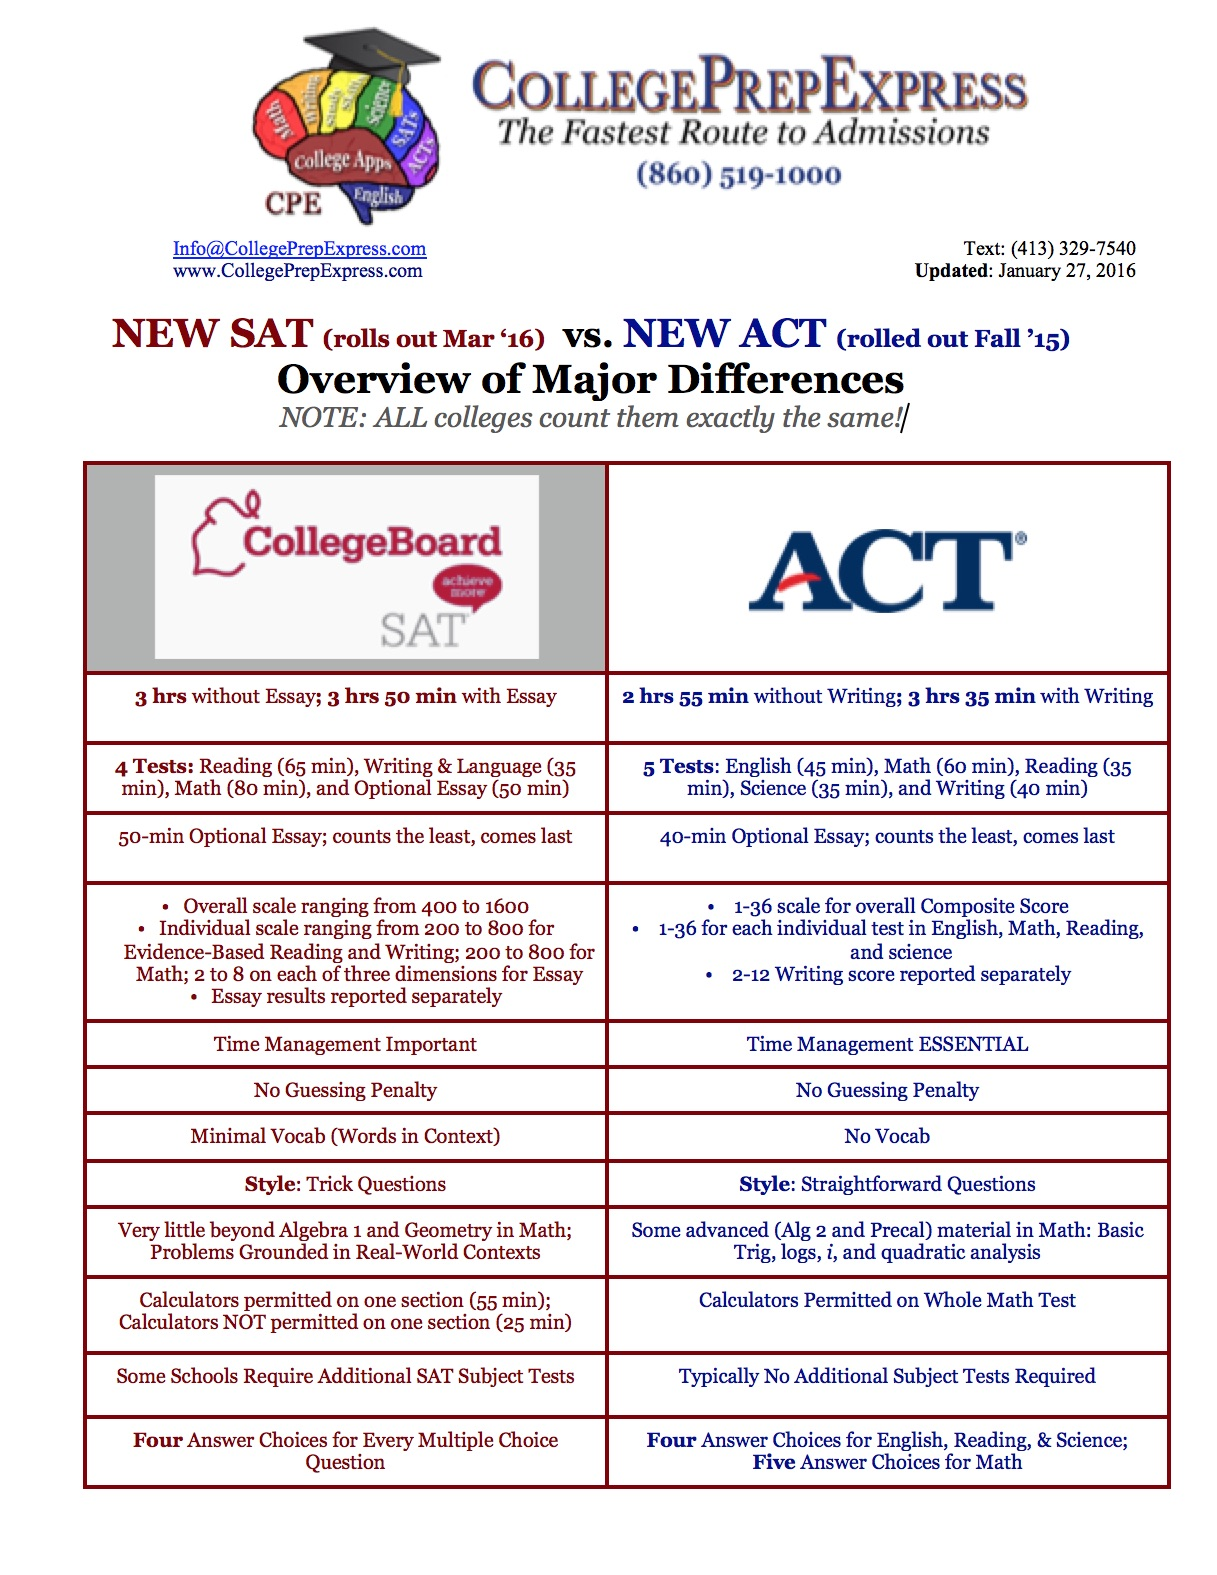 011 New Sat Essay Vs Act Overview Of Major Differences Unforgettable Score Distribution Template Pdf Full